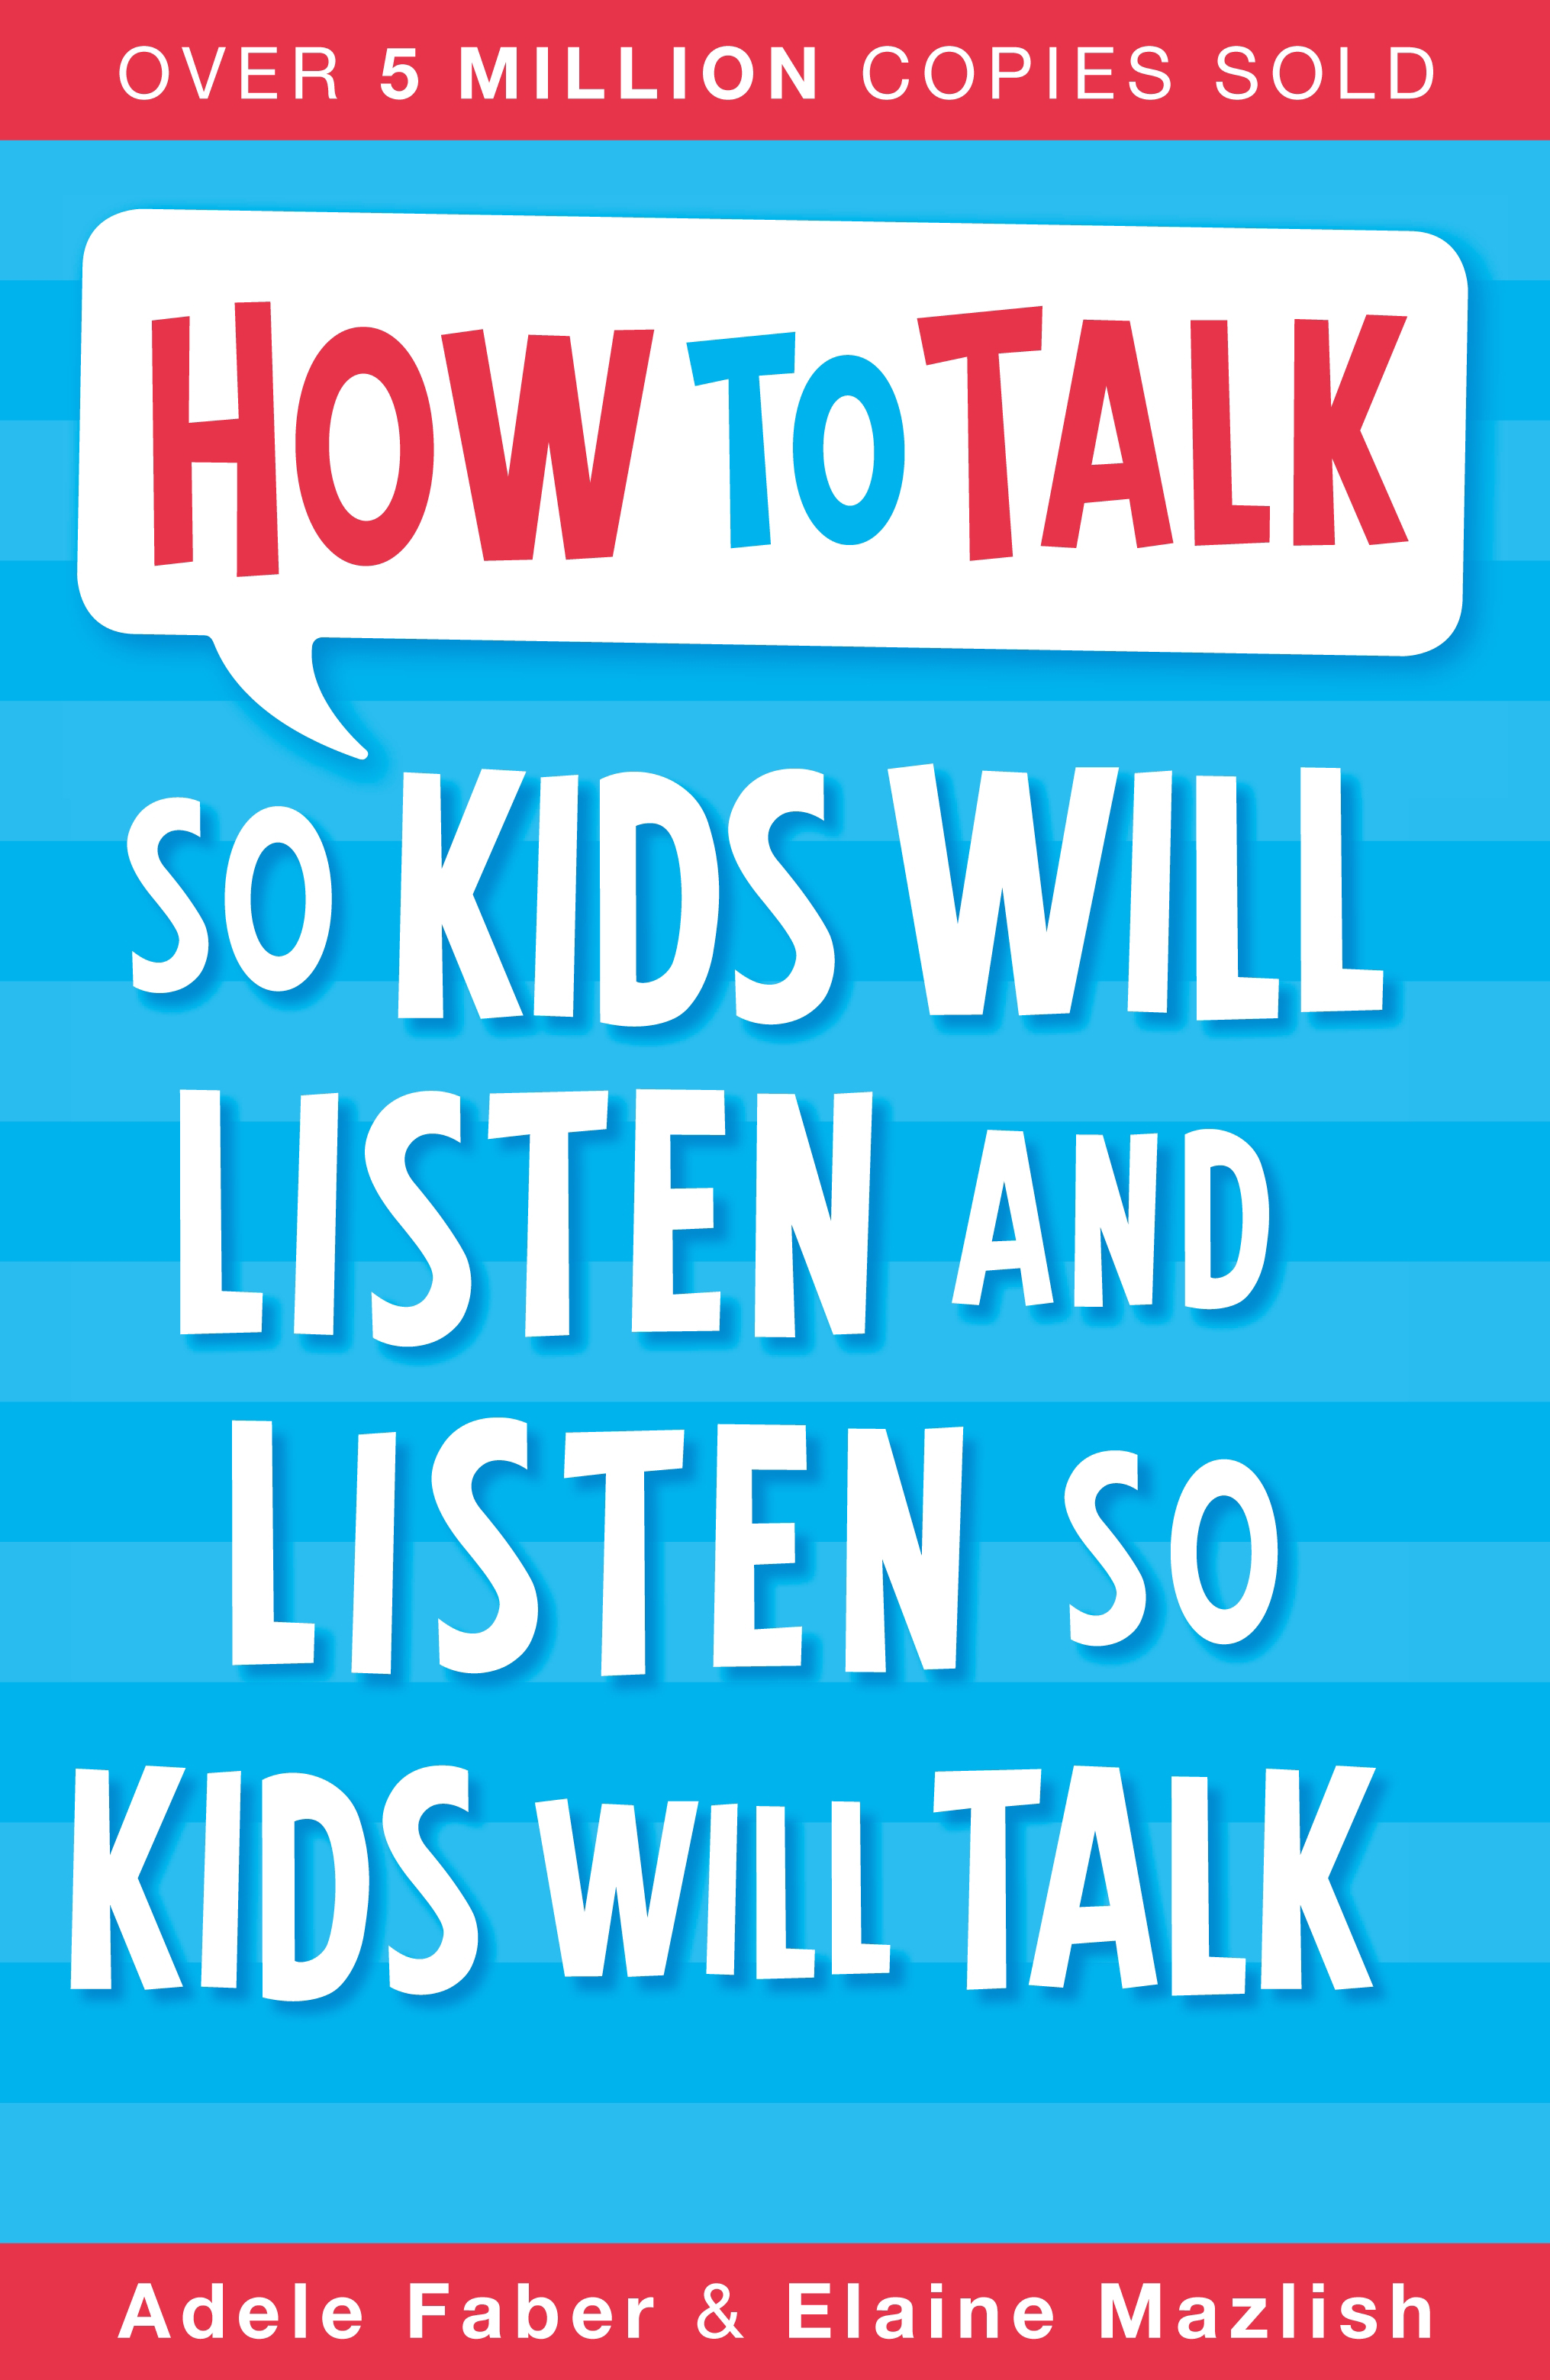 How to Talk so Kids Will Listen and Listen so Kids Will Talk by Adele Faber And Elaine Mazlish, ISBN: 9781848123090